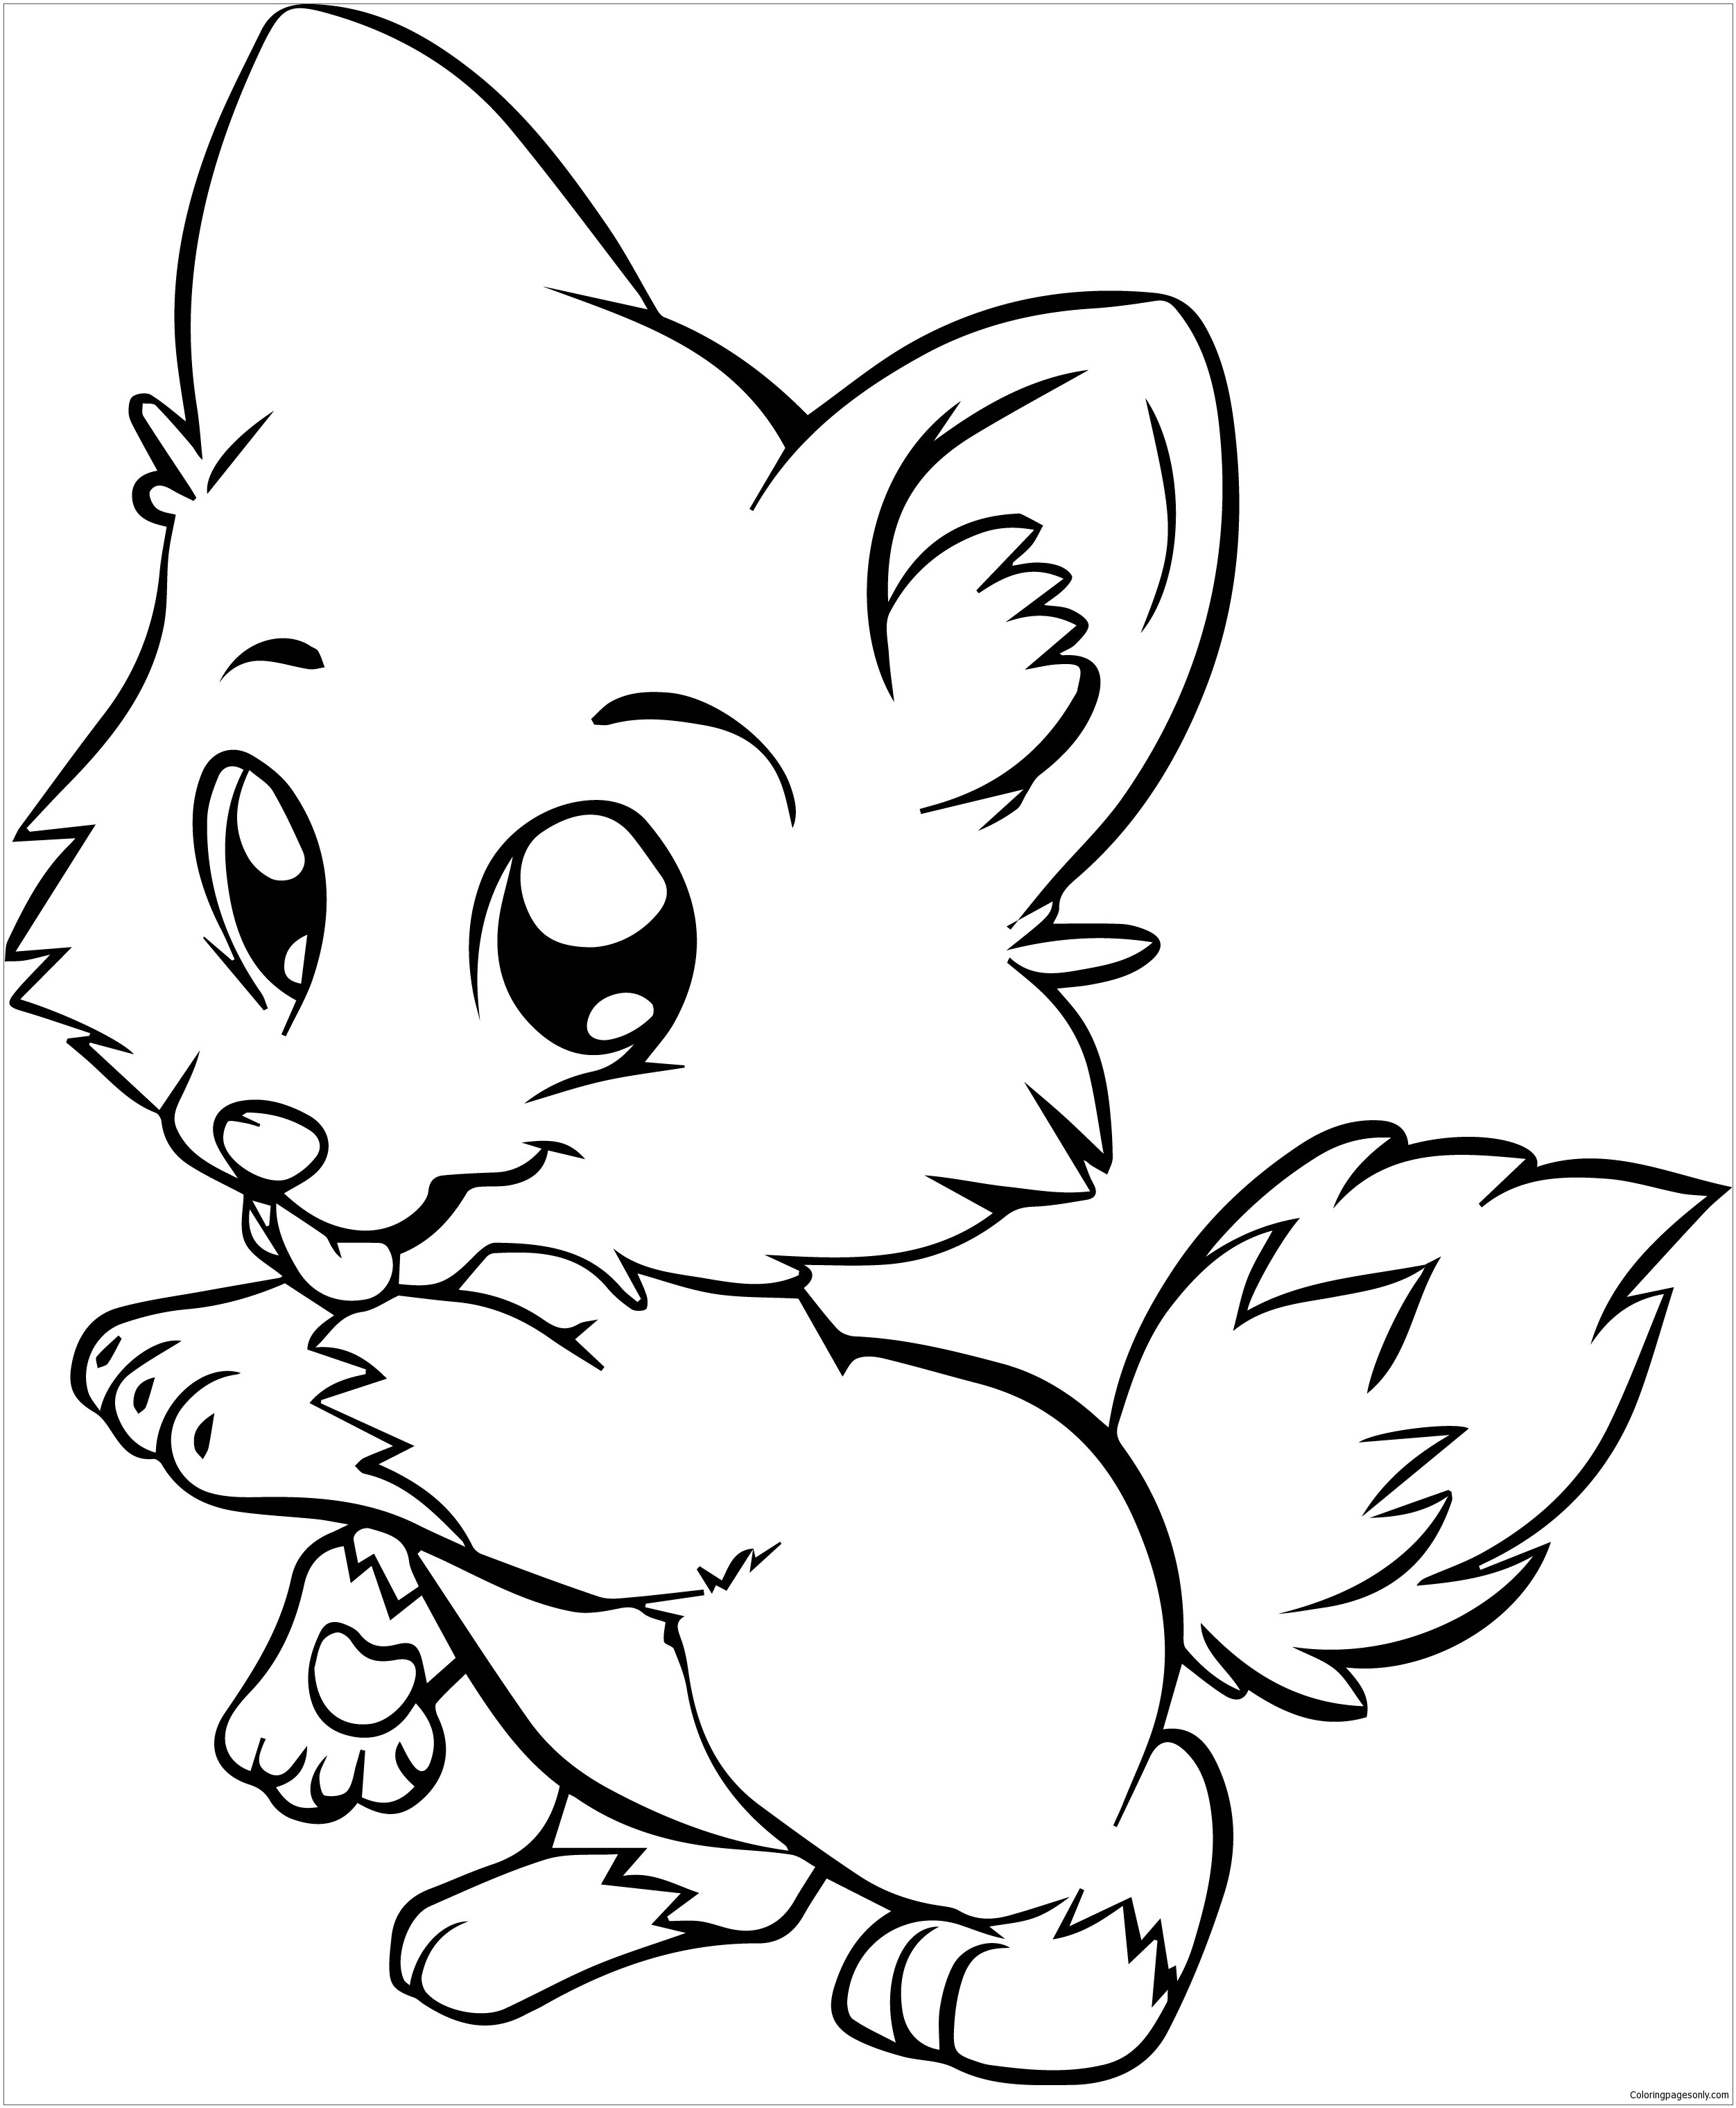 dog colouring in free printable dog coloring pages for kids in colouring dog